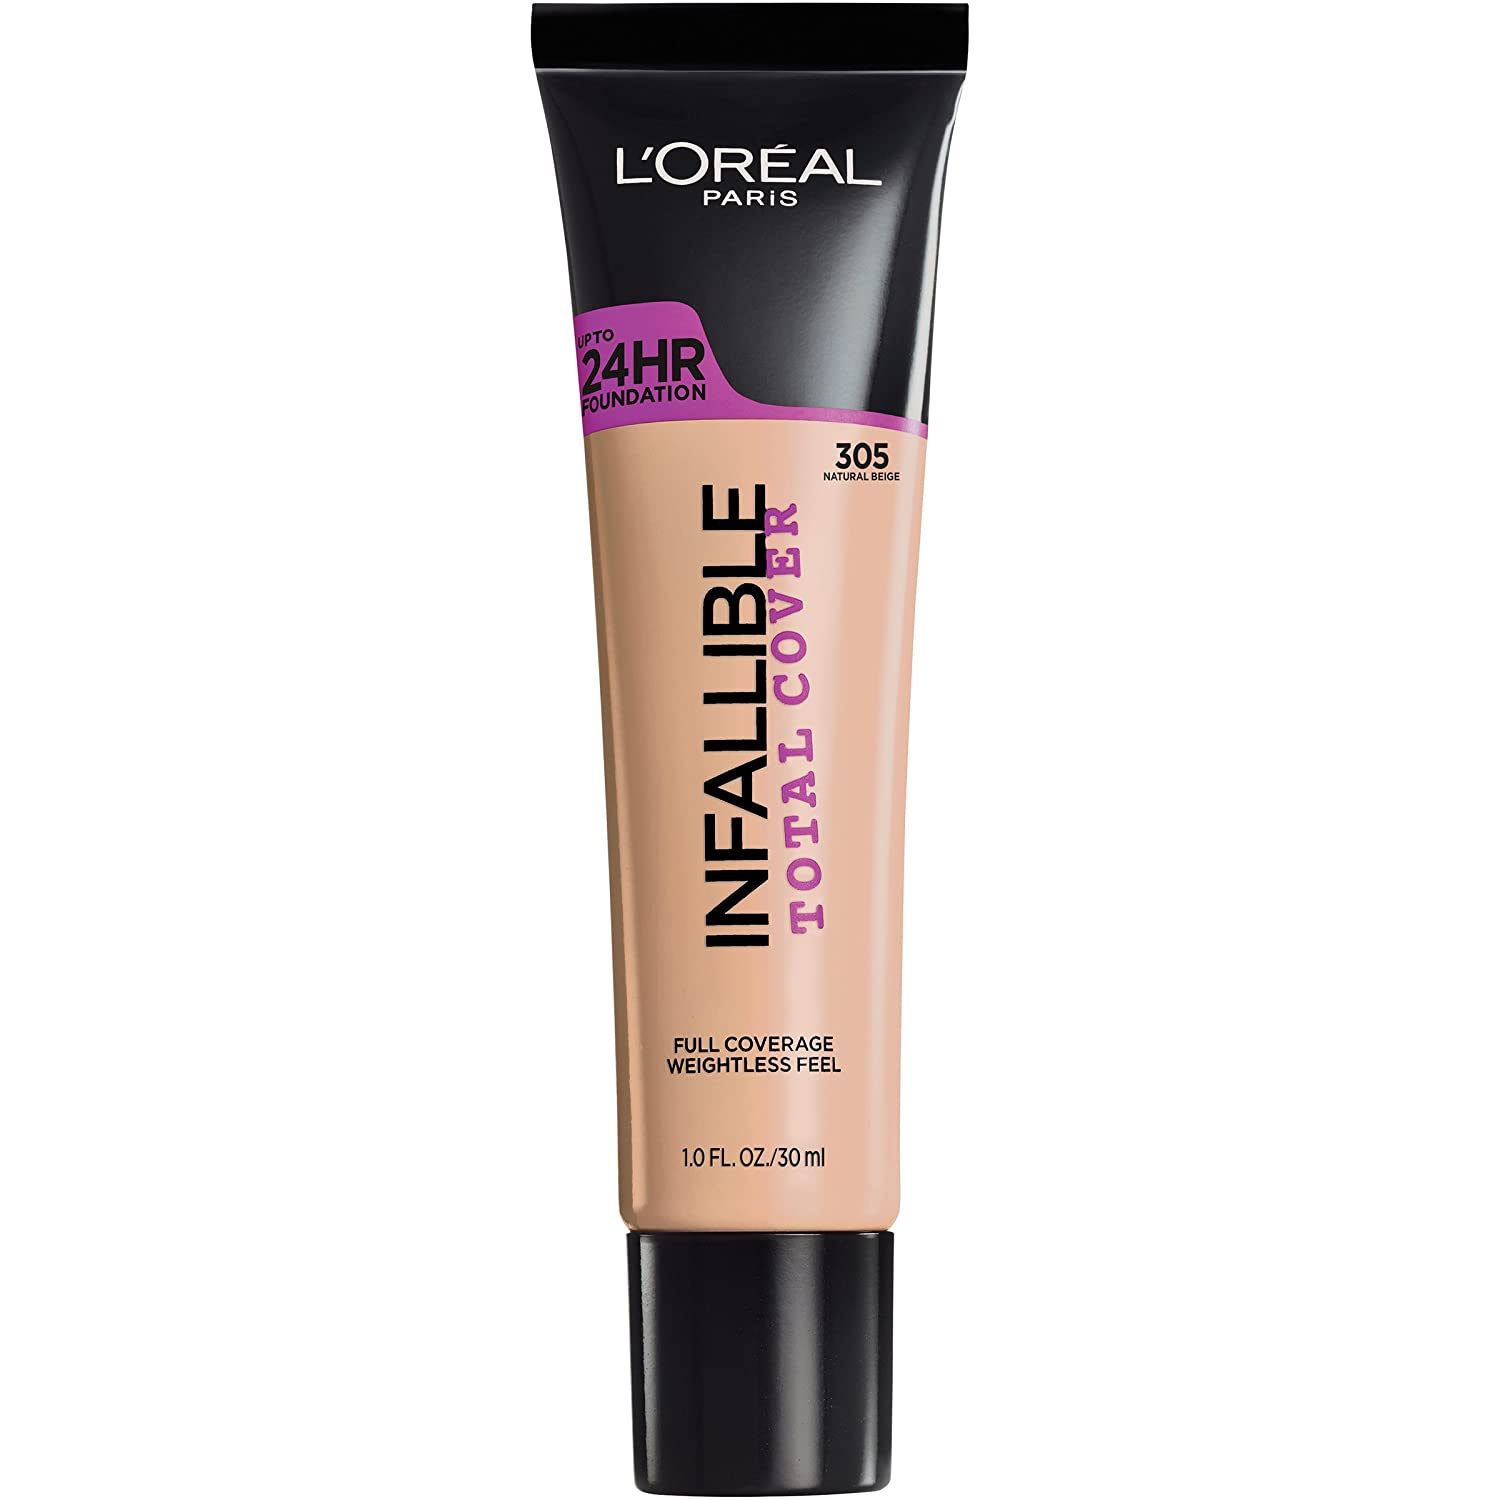 L'Oréal Paris Infallible Total Cover Foundation, Natural Beige, 1 fl. oz.